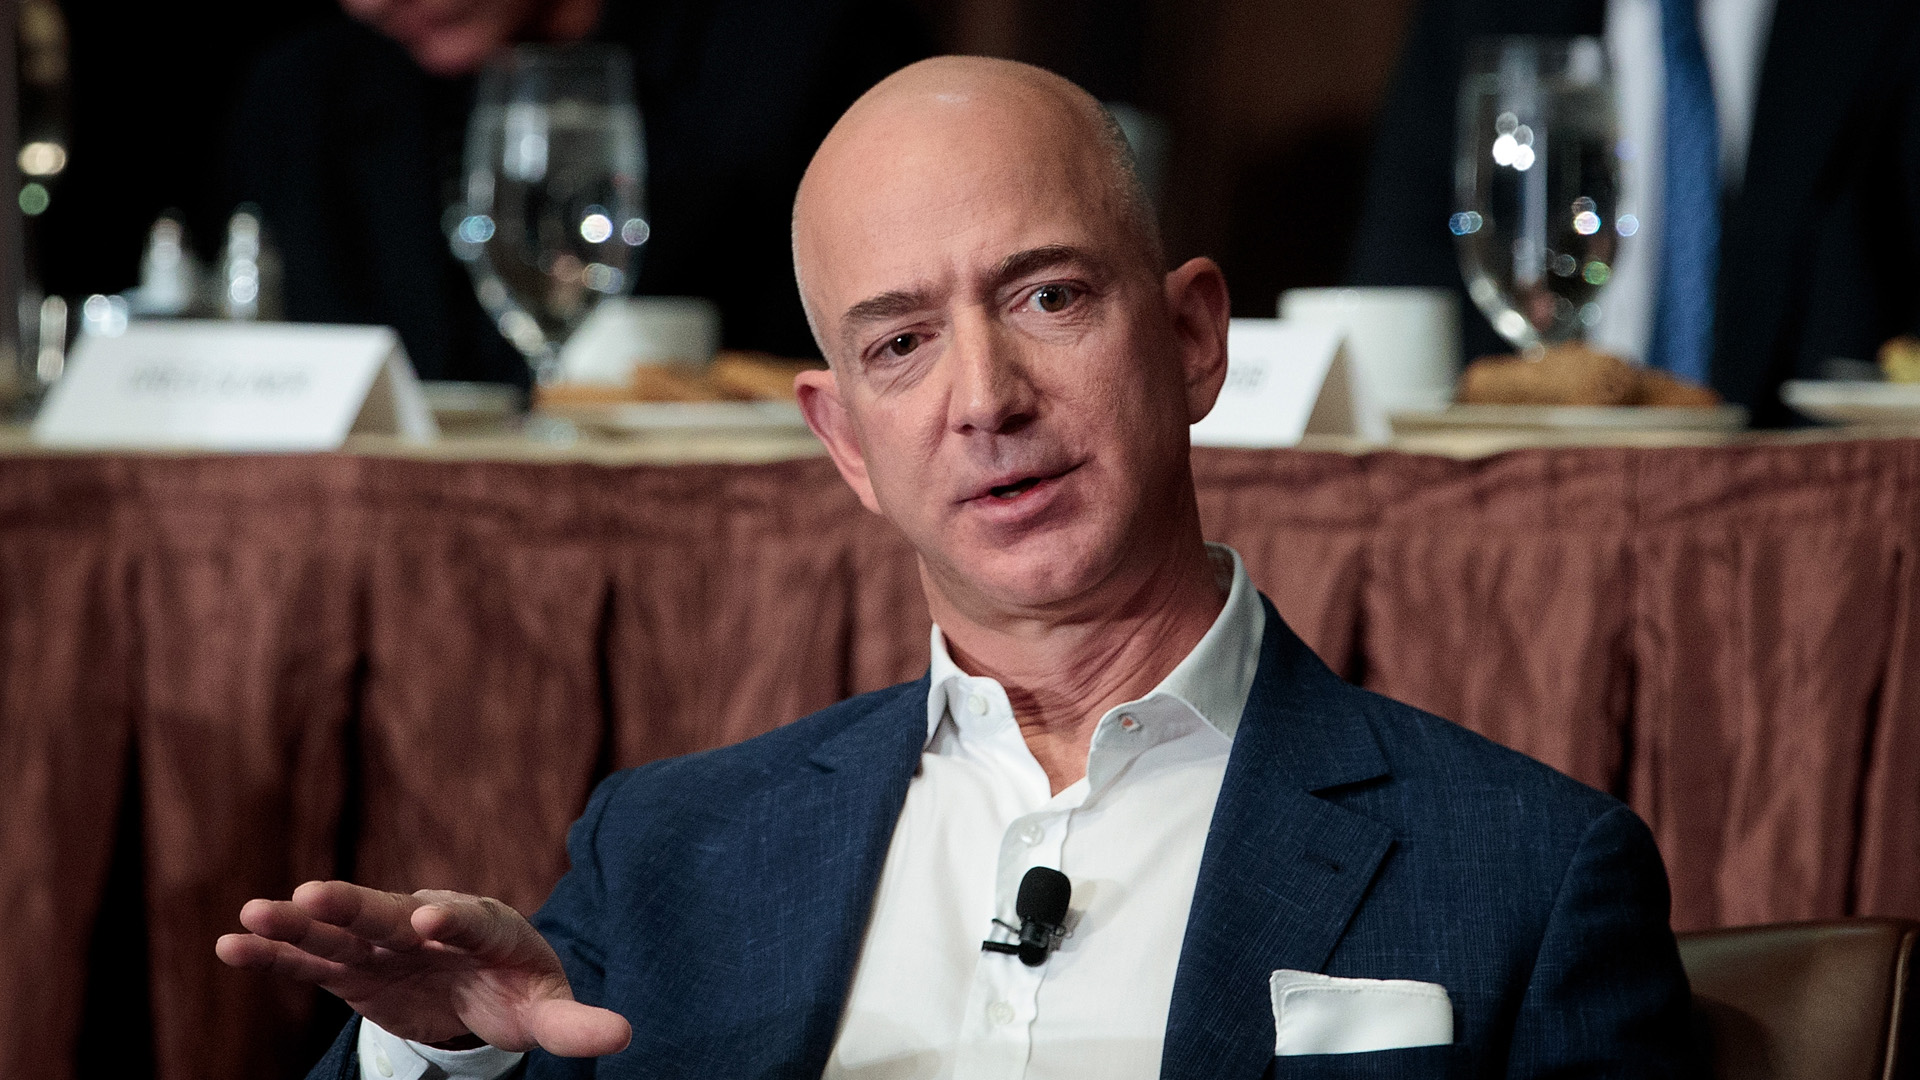 Jeff Bezos, Chairman and founder of Amazon.com and owner of The Washington Post, addresses the Economic Club of New York, at the Sheraton New York Times Square Hotel, October 27, 2016 in New York City. (Credit: Drew Angerer/Getty Images)